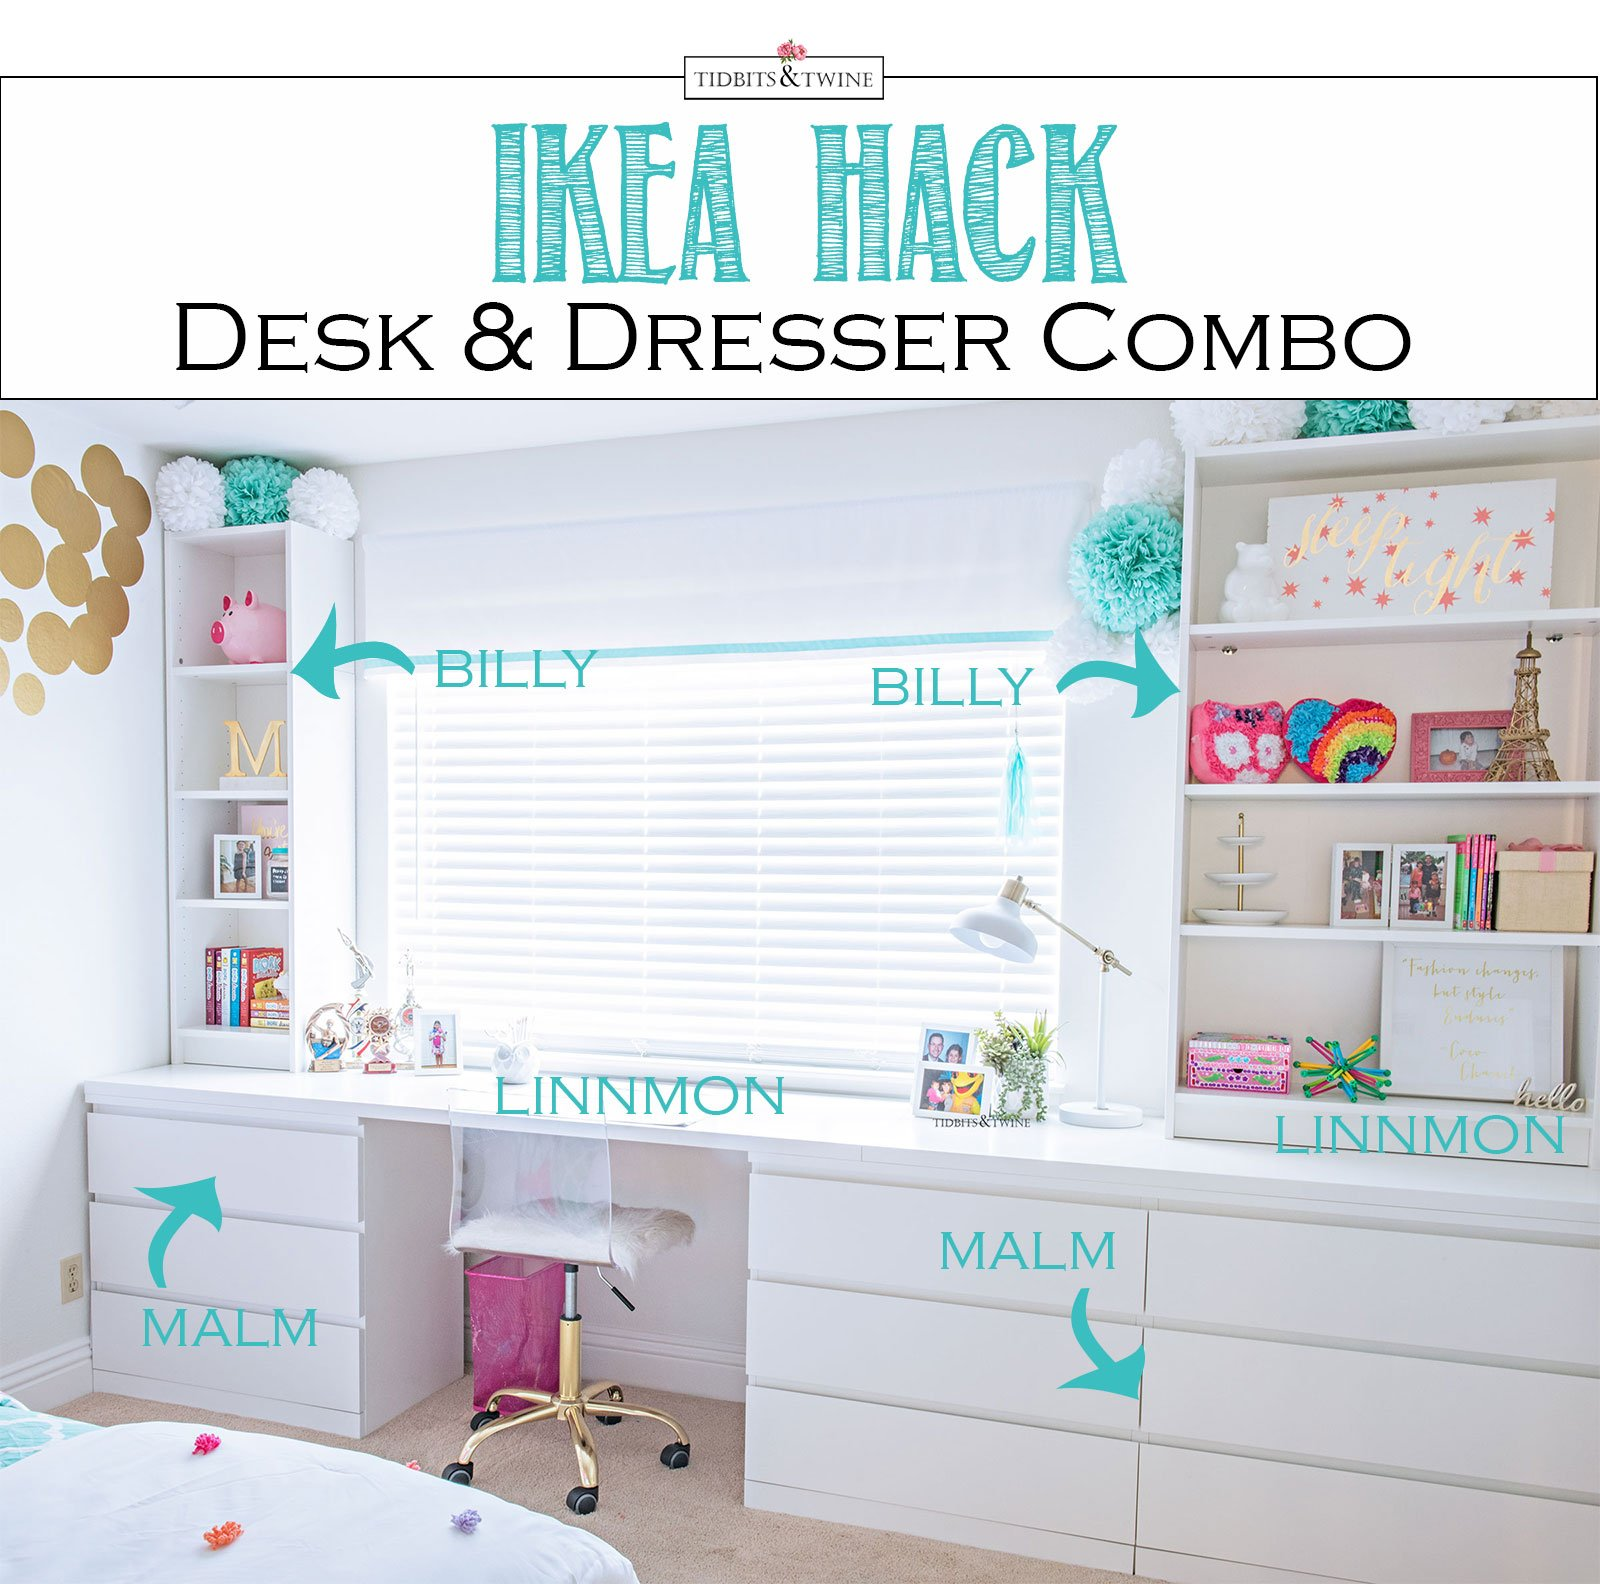 IKEA Hack - For a Built-In Look - TIDBITS&TWINE